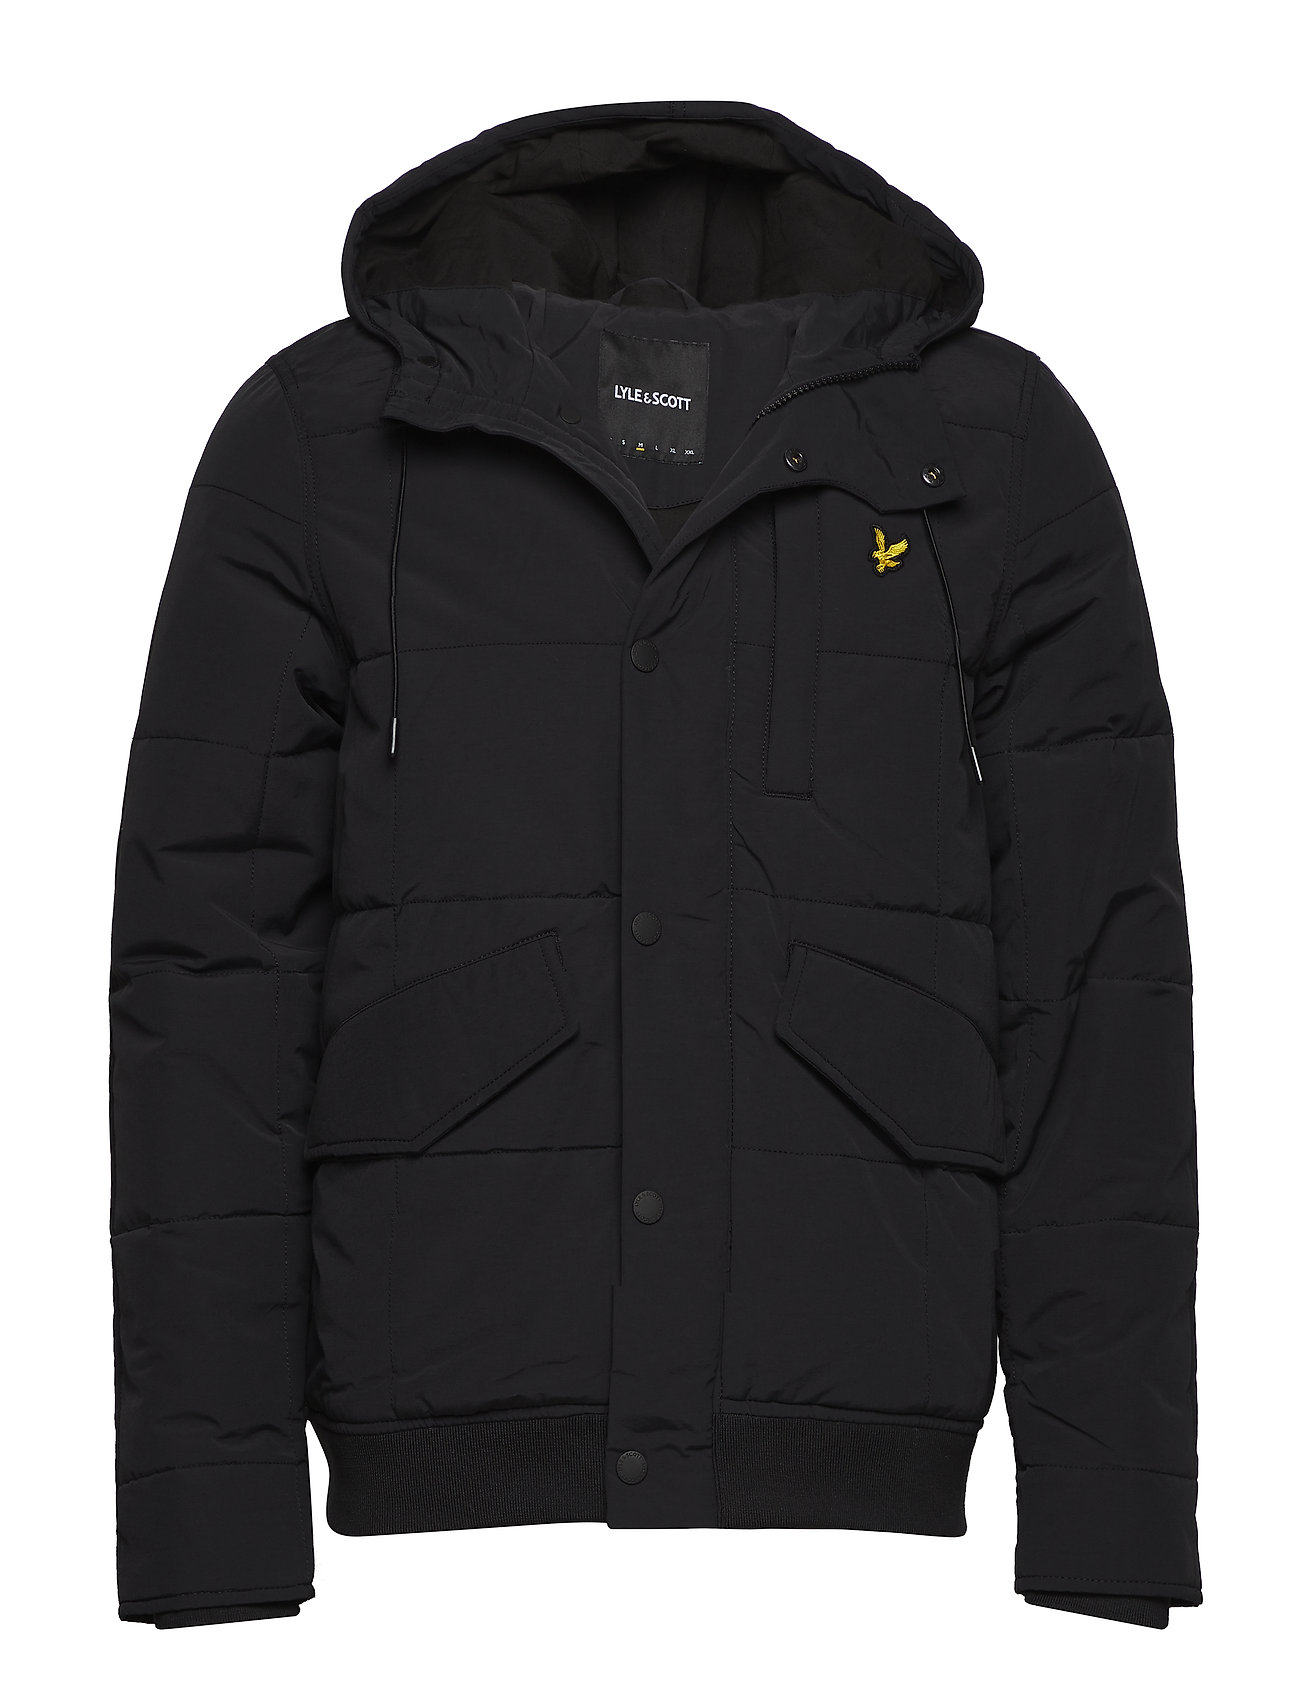 Bombertrue Hooded Wadded Wadded BlackLyleamp; Scott UVSzMqp